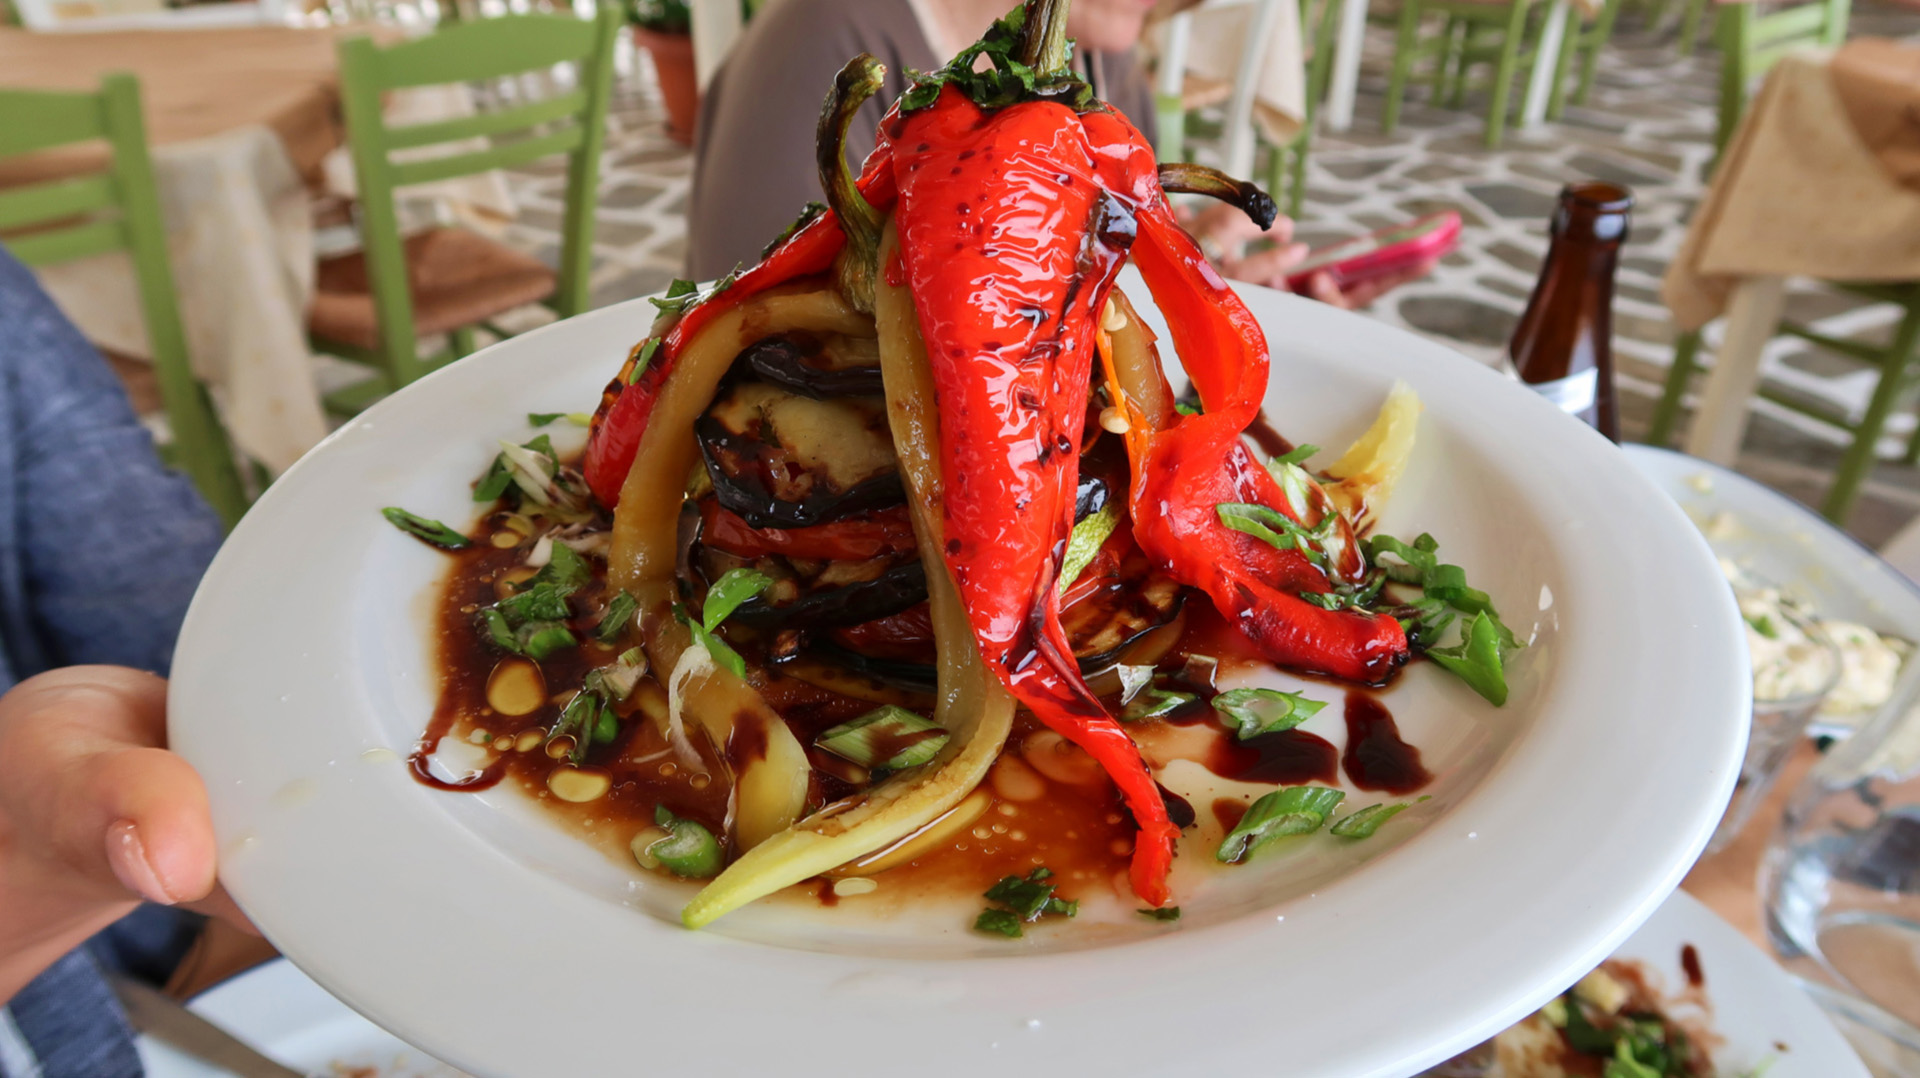 Sway the way andros chora restaurant grilled vegetables